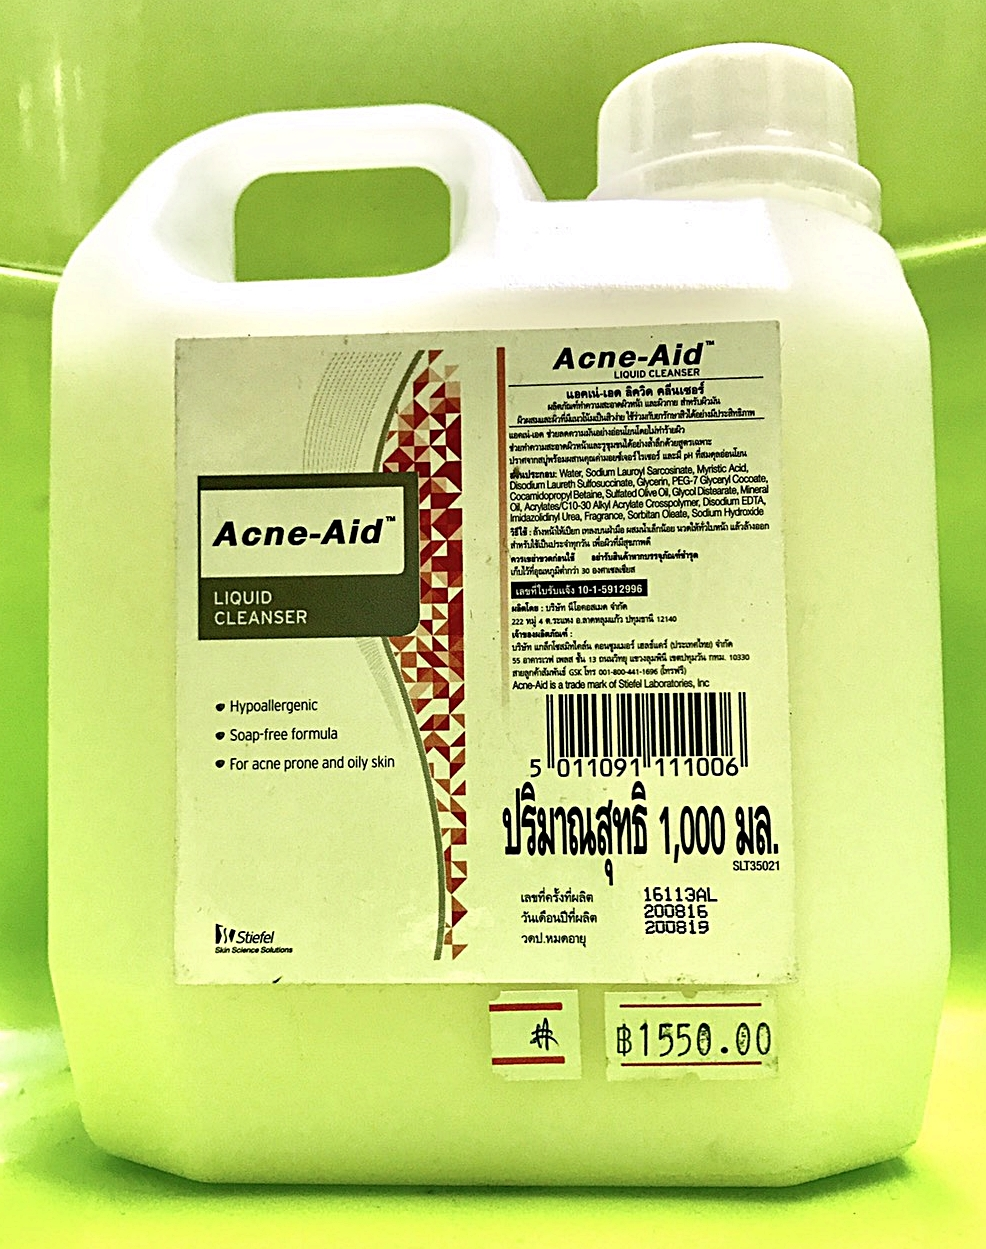 Acne-Aid liquid Cleanser 1000 ml